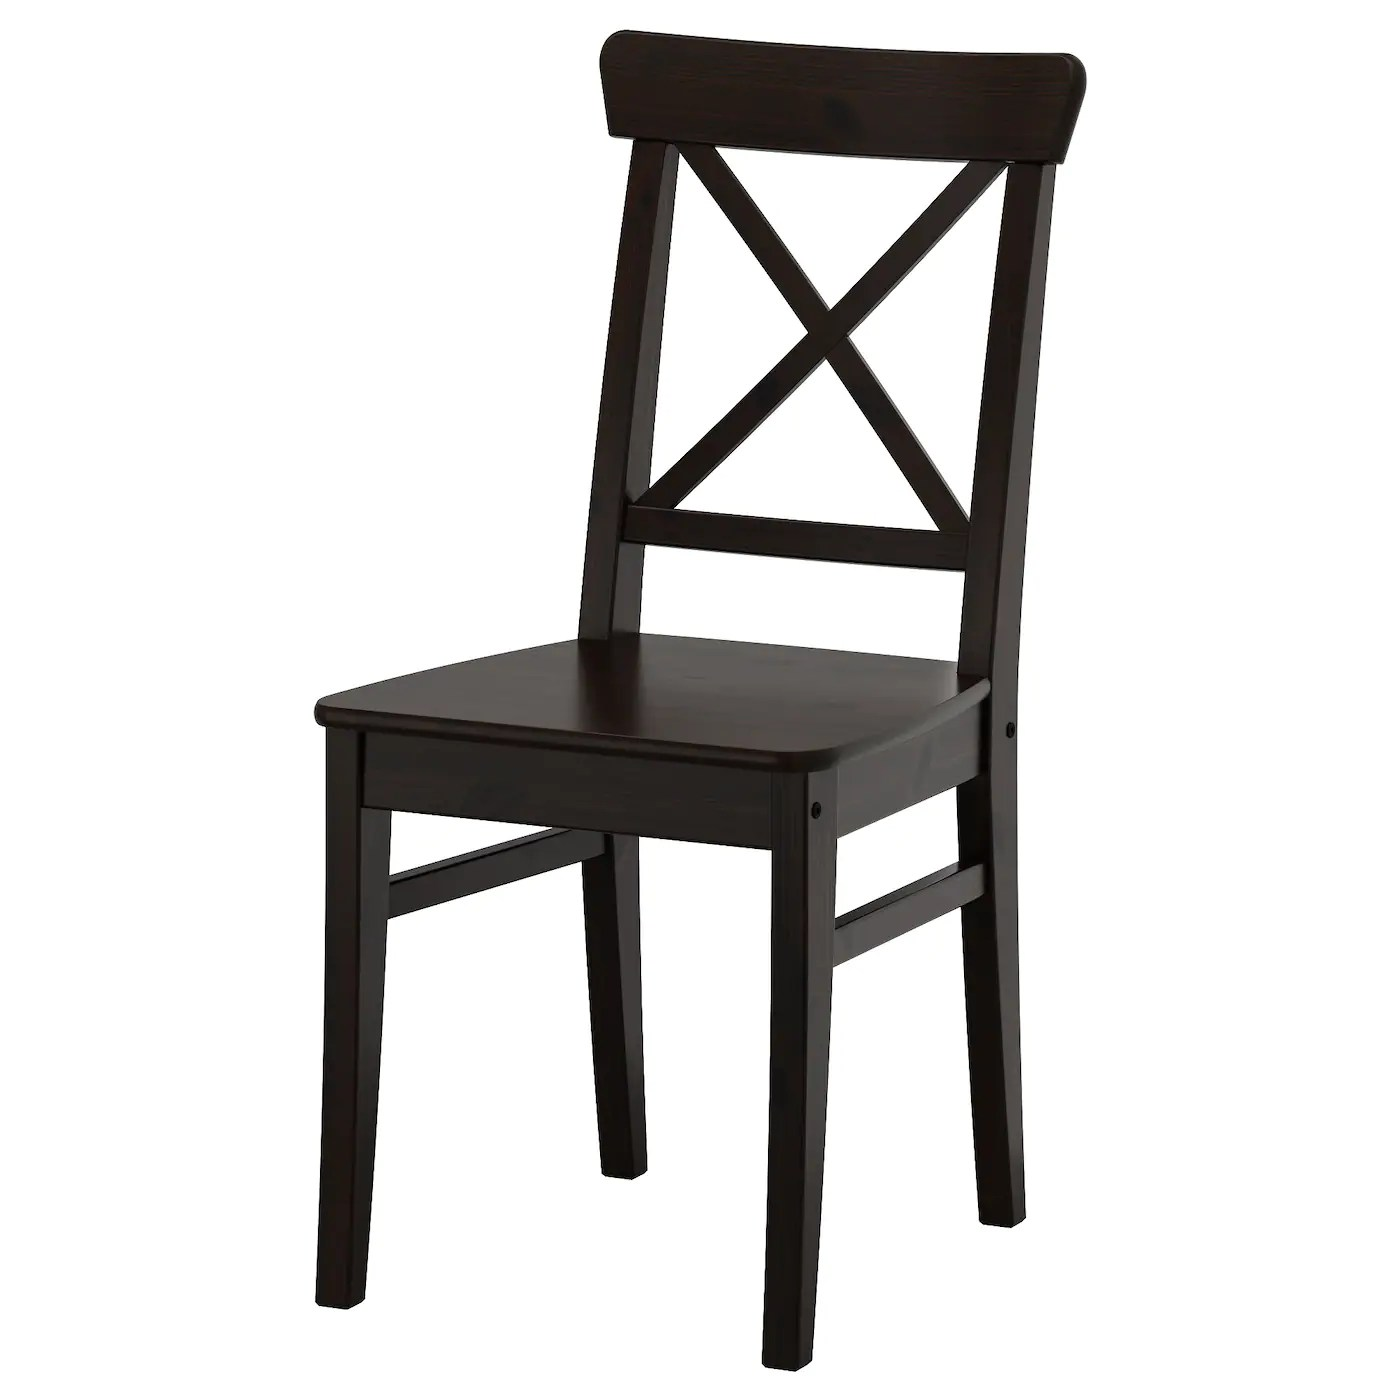 White Chair Ikea Ingolf Chair Brown Black Ikea